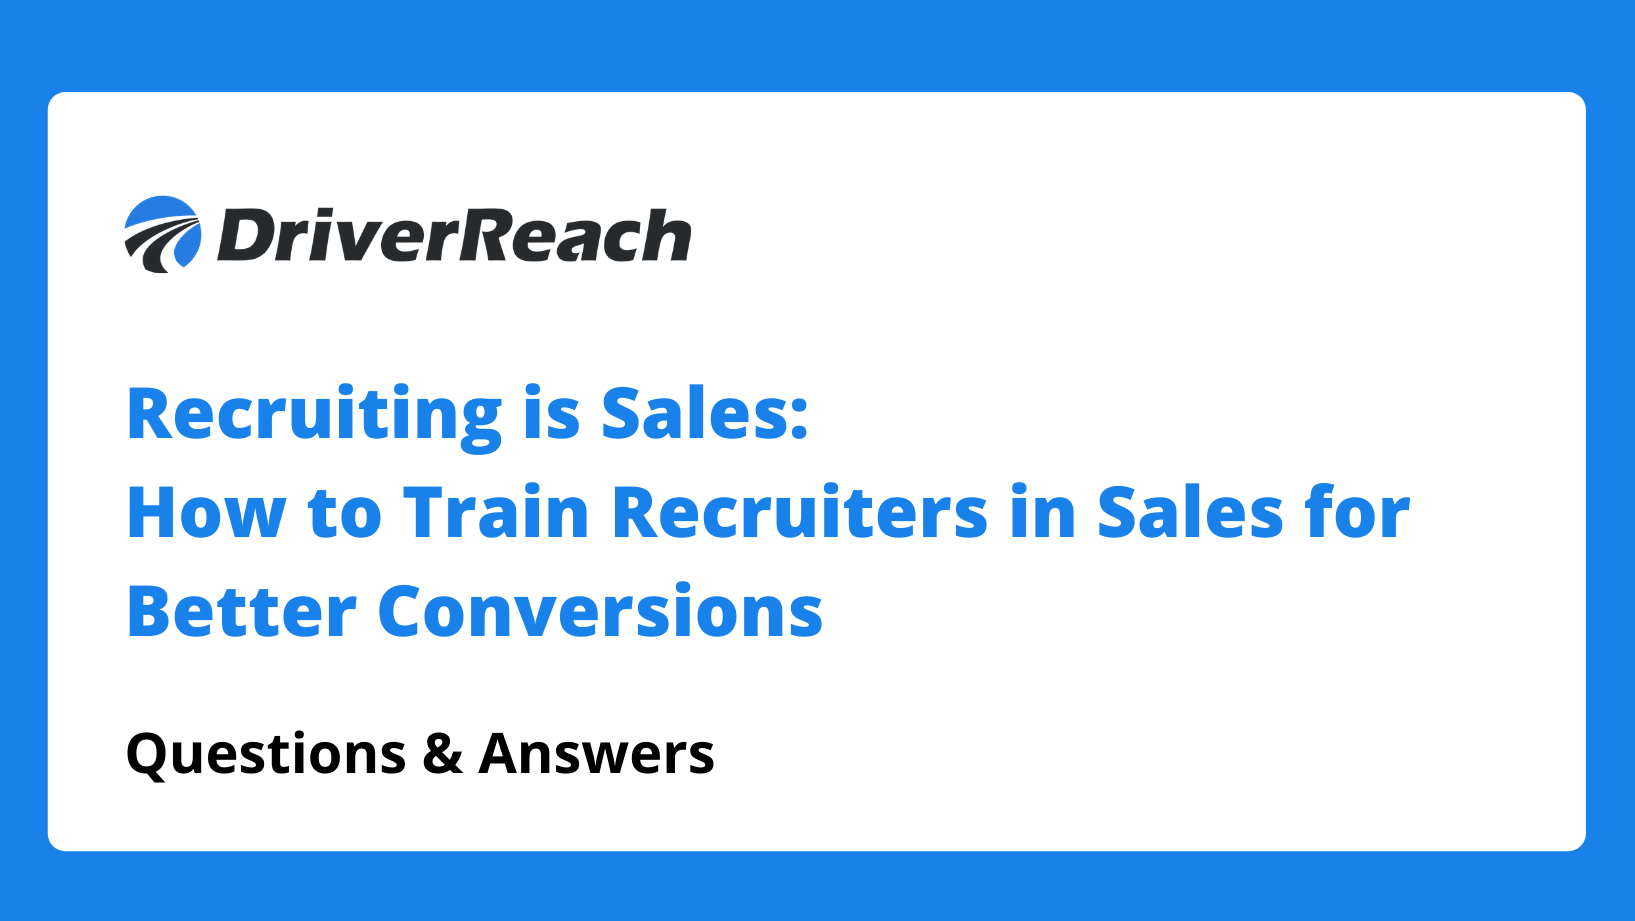 Webinar Q&A: Recruiting is Sales: How to Train Recruiters in Sales for Better Conversions